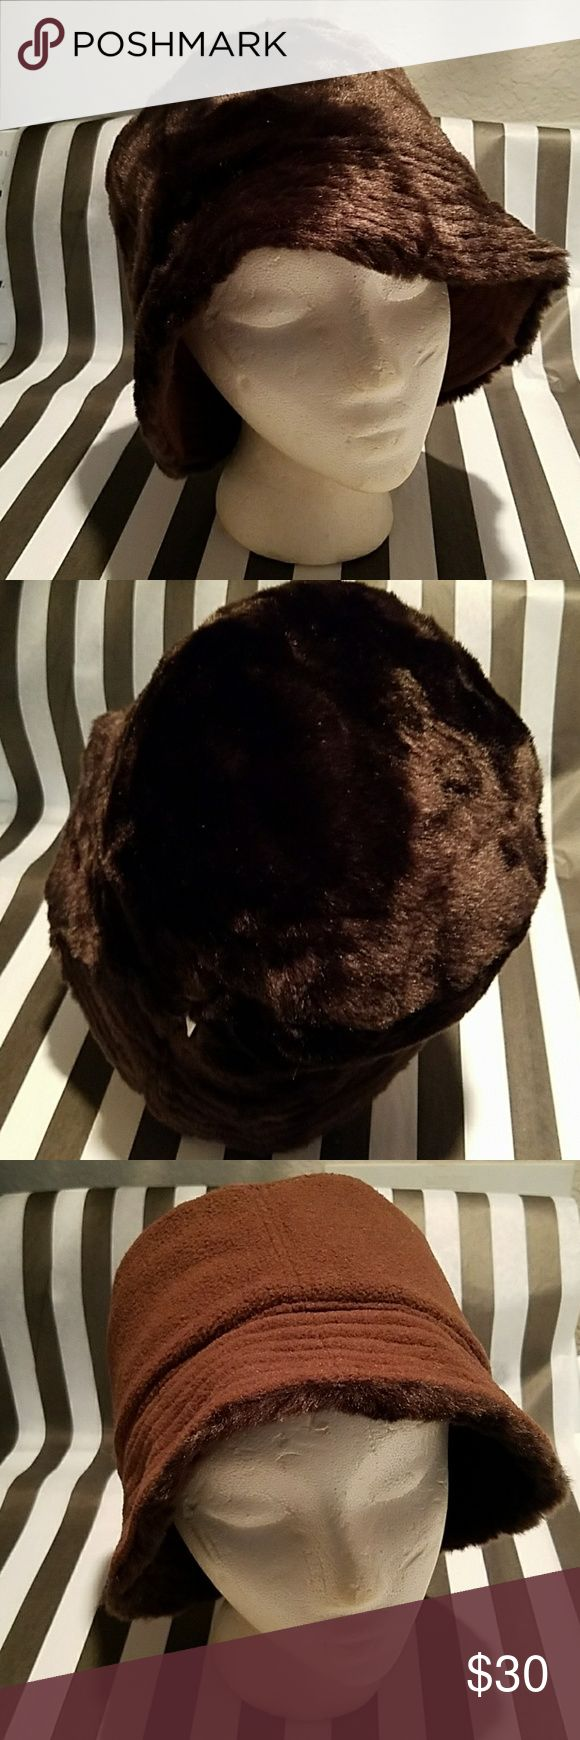 Reversible Chocolate faux fur/fleece bucket hat Offered is a reversible chocolate faux fur on one side and mocha fleece on the other bucket hat. New without tags and in immaculate condition. Elegant faux fur is animal friendly and luxurious. This would look stunning paired with the faux leopard cuffed knit gloves I have for sale,  listed separately. Look sexy and keep Warm! Winter is here! Accessories Hats